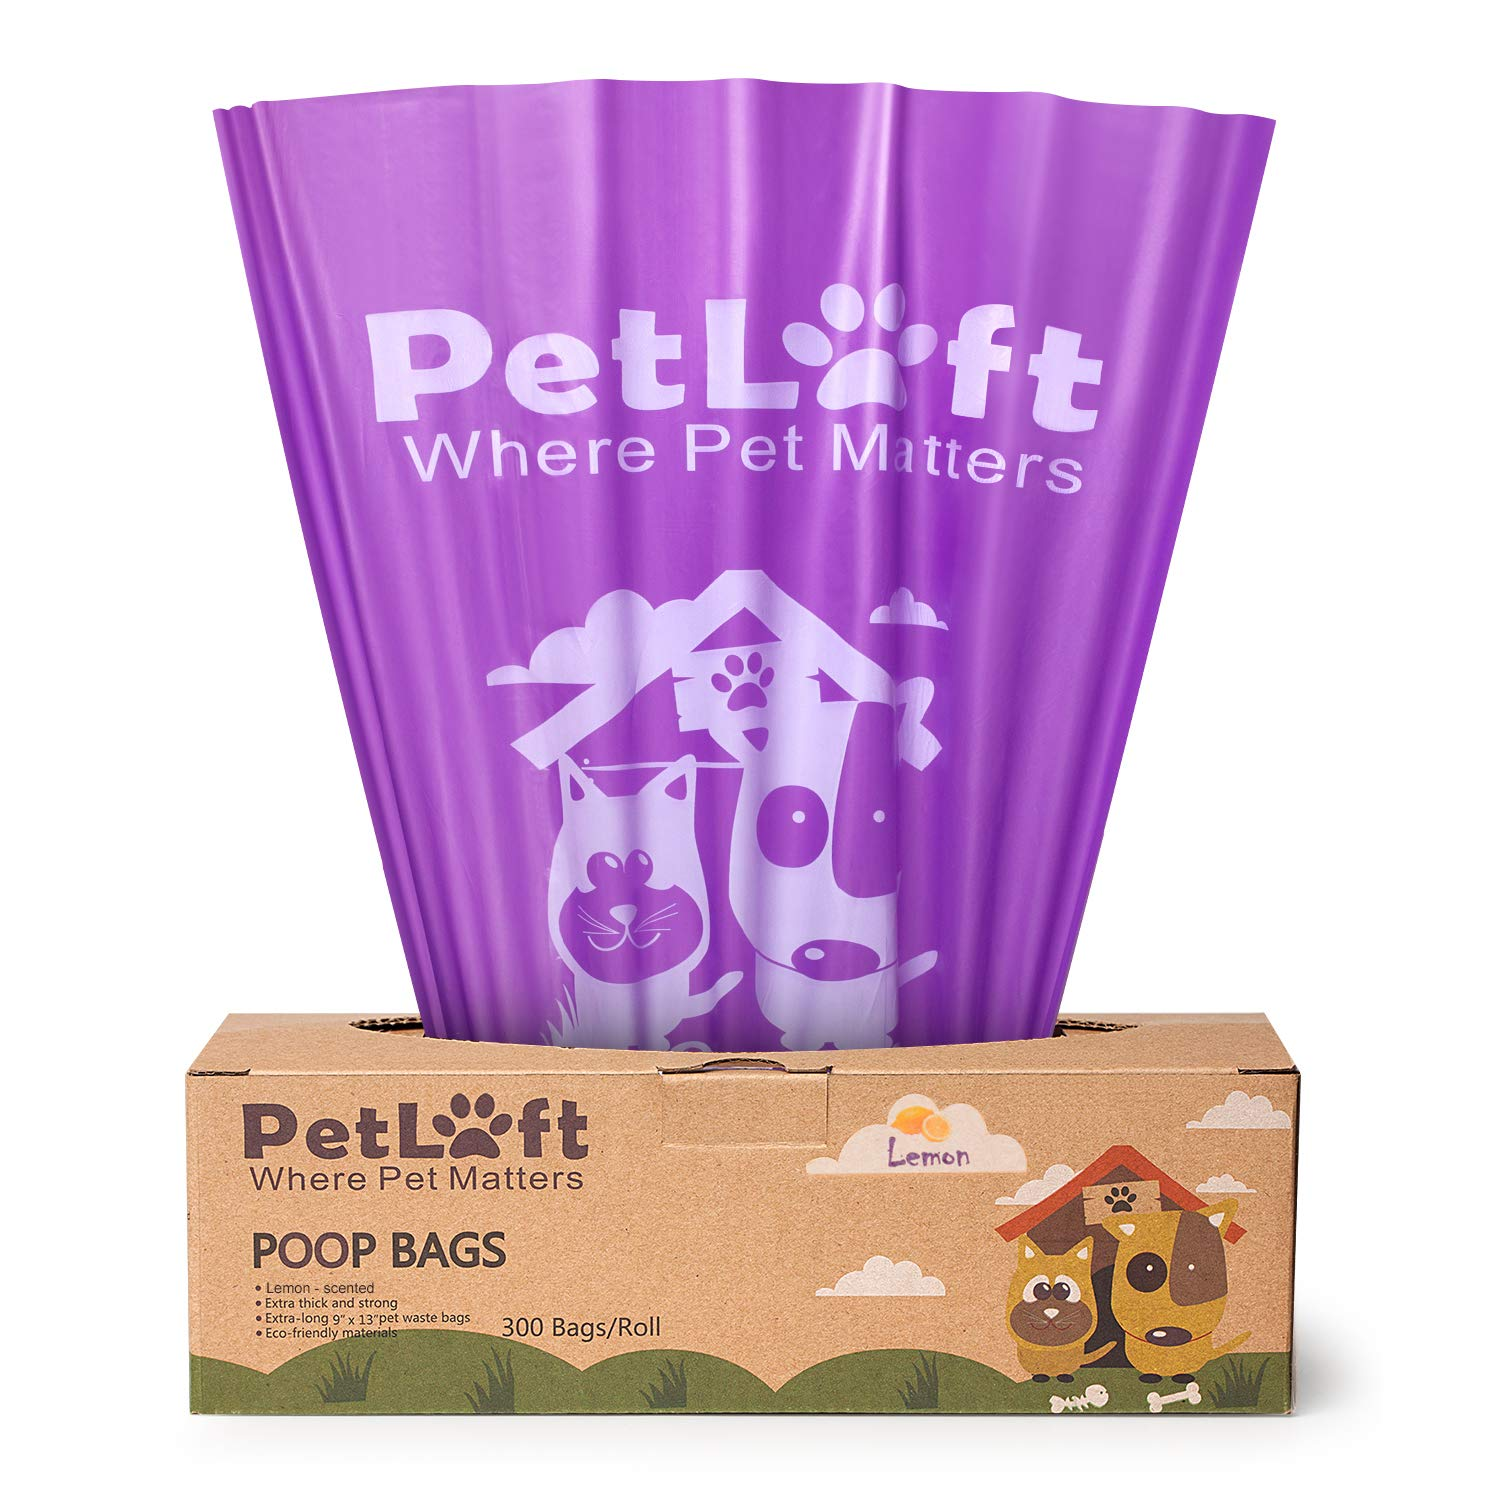 300 Counts (Lemon-Scented) PETLOFT Poop Bags for Dogs, 300-Count Lemon-Scented Durable EPI Biodegradable Environment-Friendly Dog Waste Bag, Dog Poop Bag in Tissue Dispensing Format Purple (Lemon-Scented)